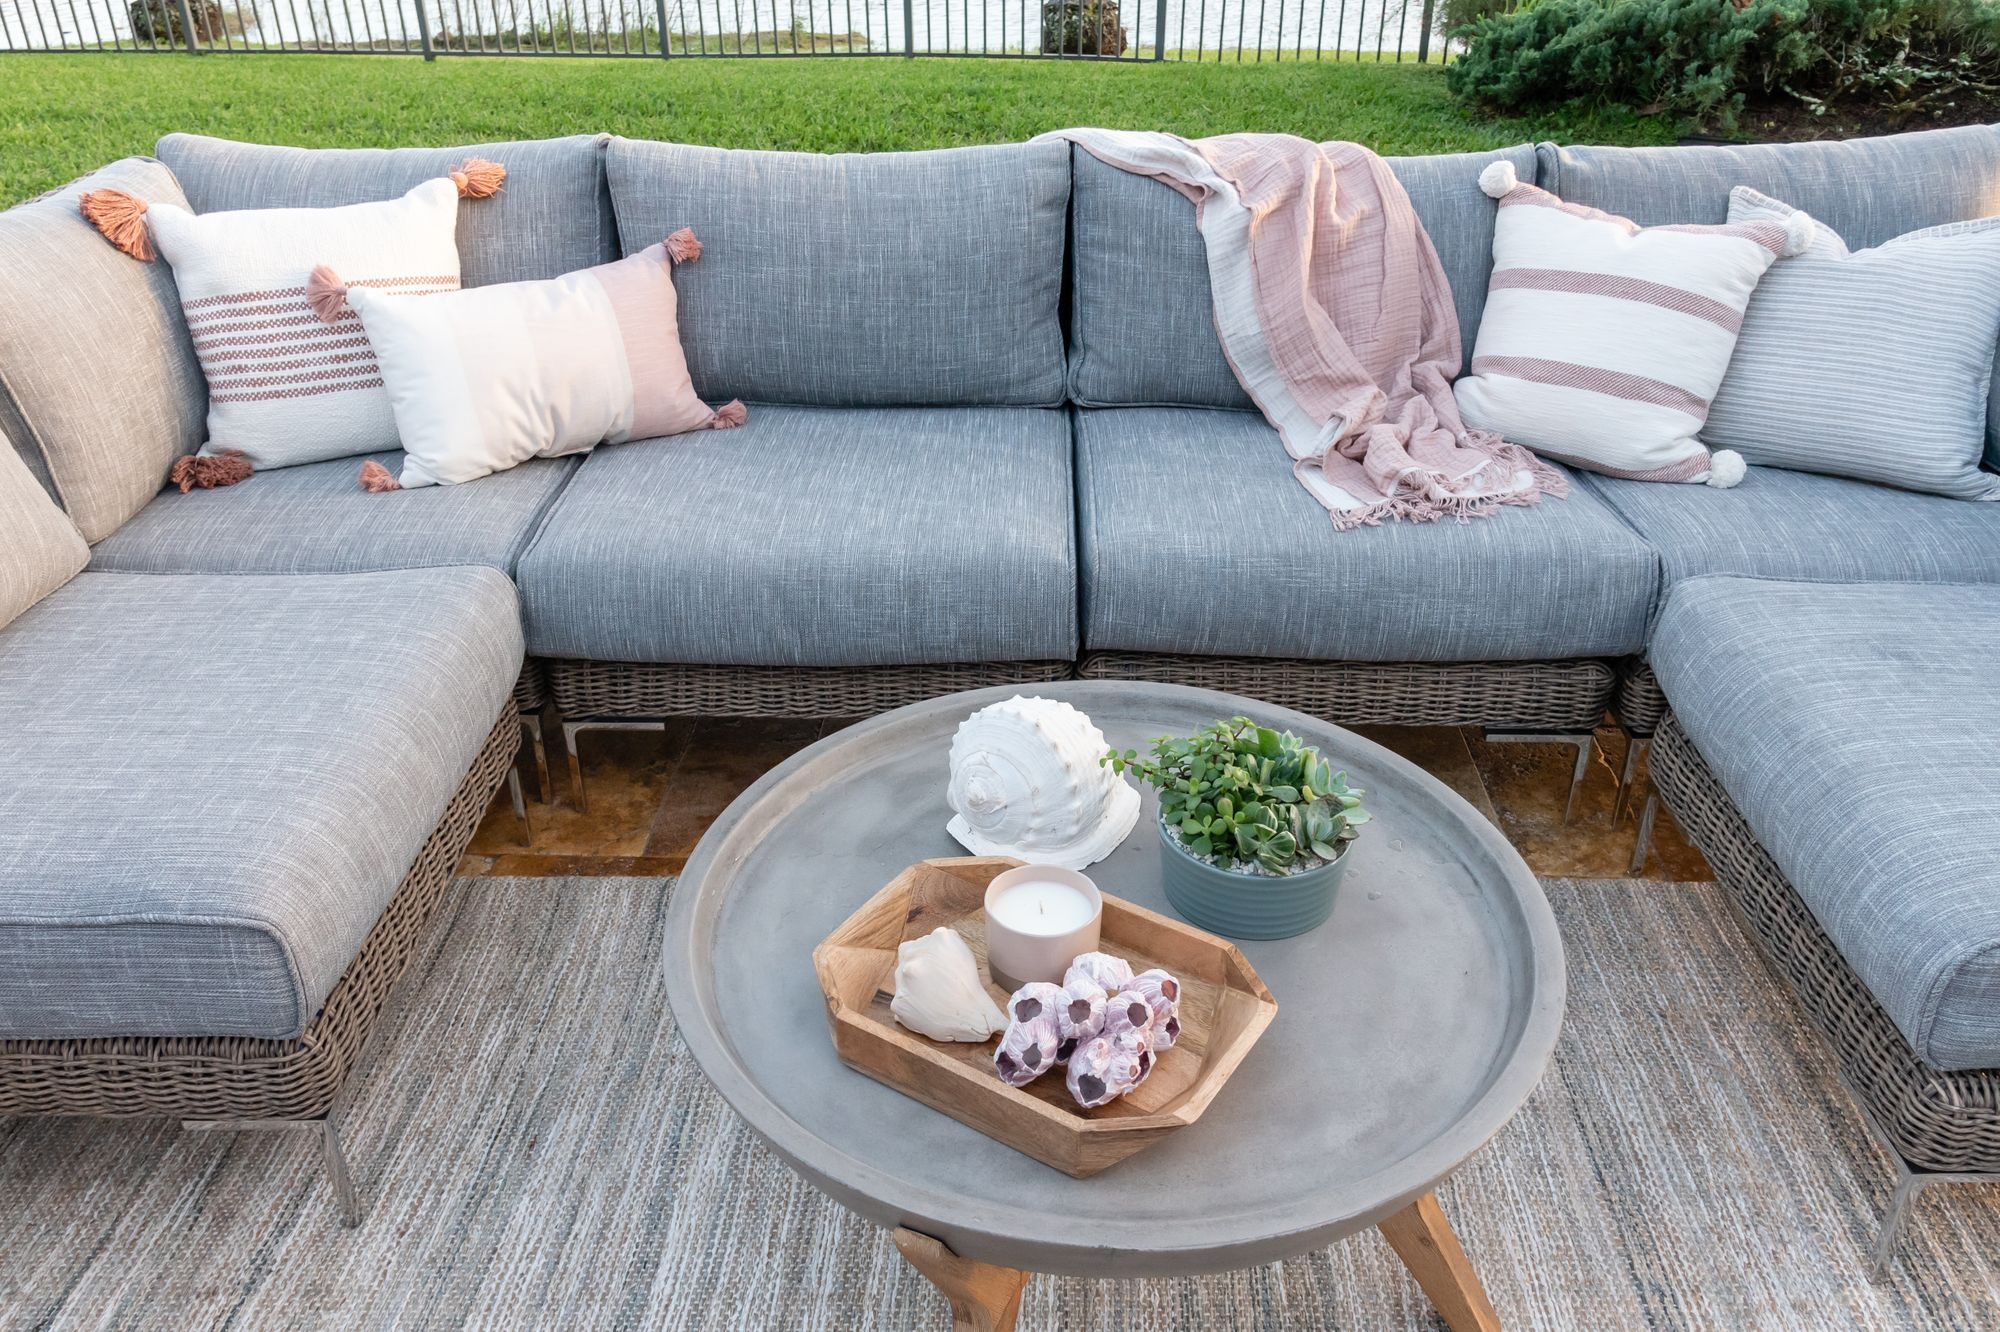 Outer outdoor sectional beautifully styled in a backyard